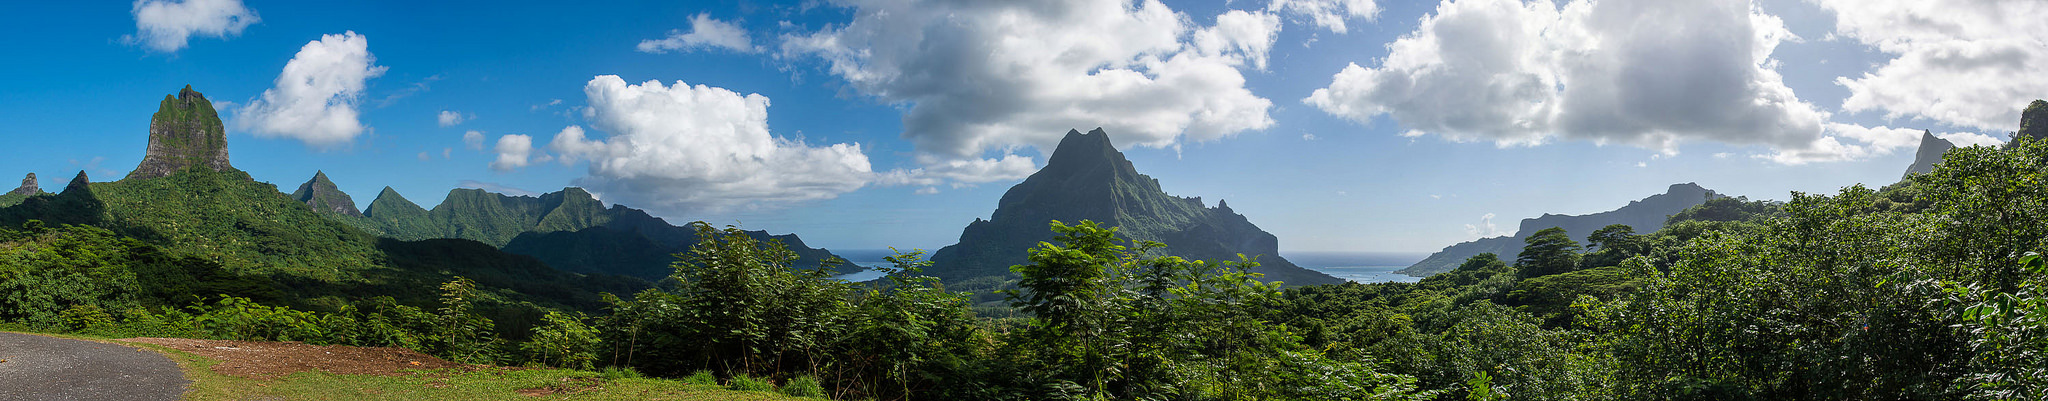 Moorea is considered one of the world's most beautiful islands. Pic: Herve